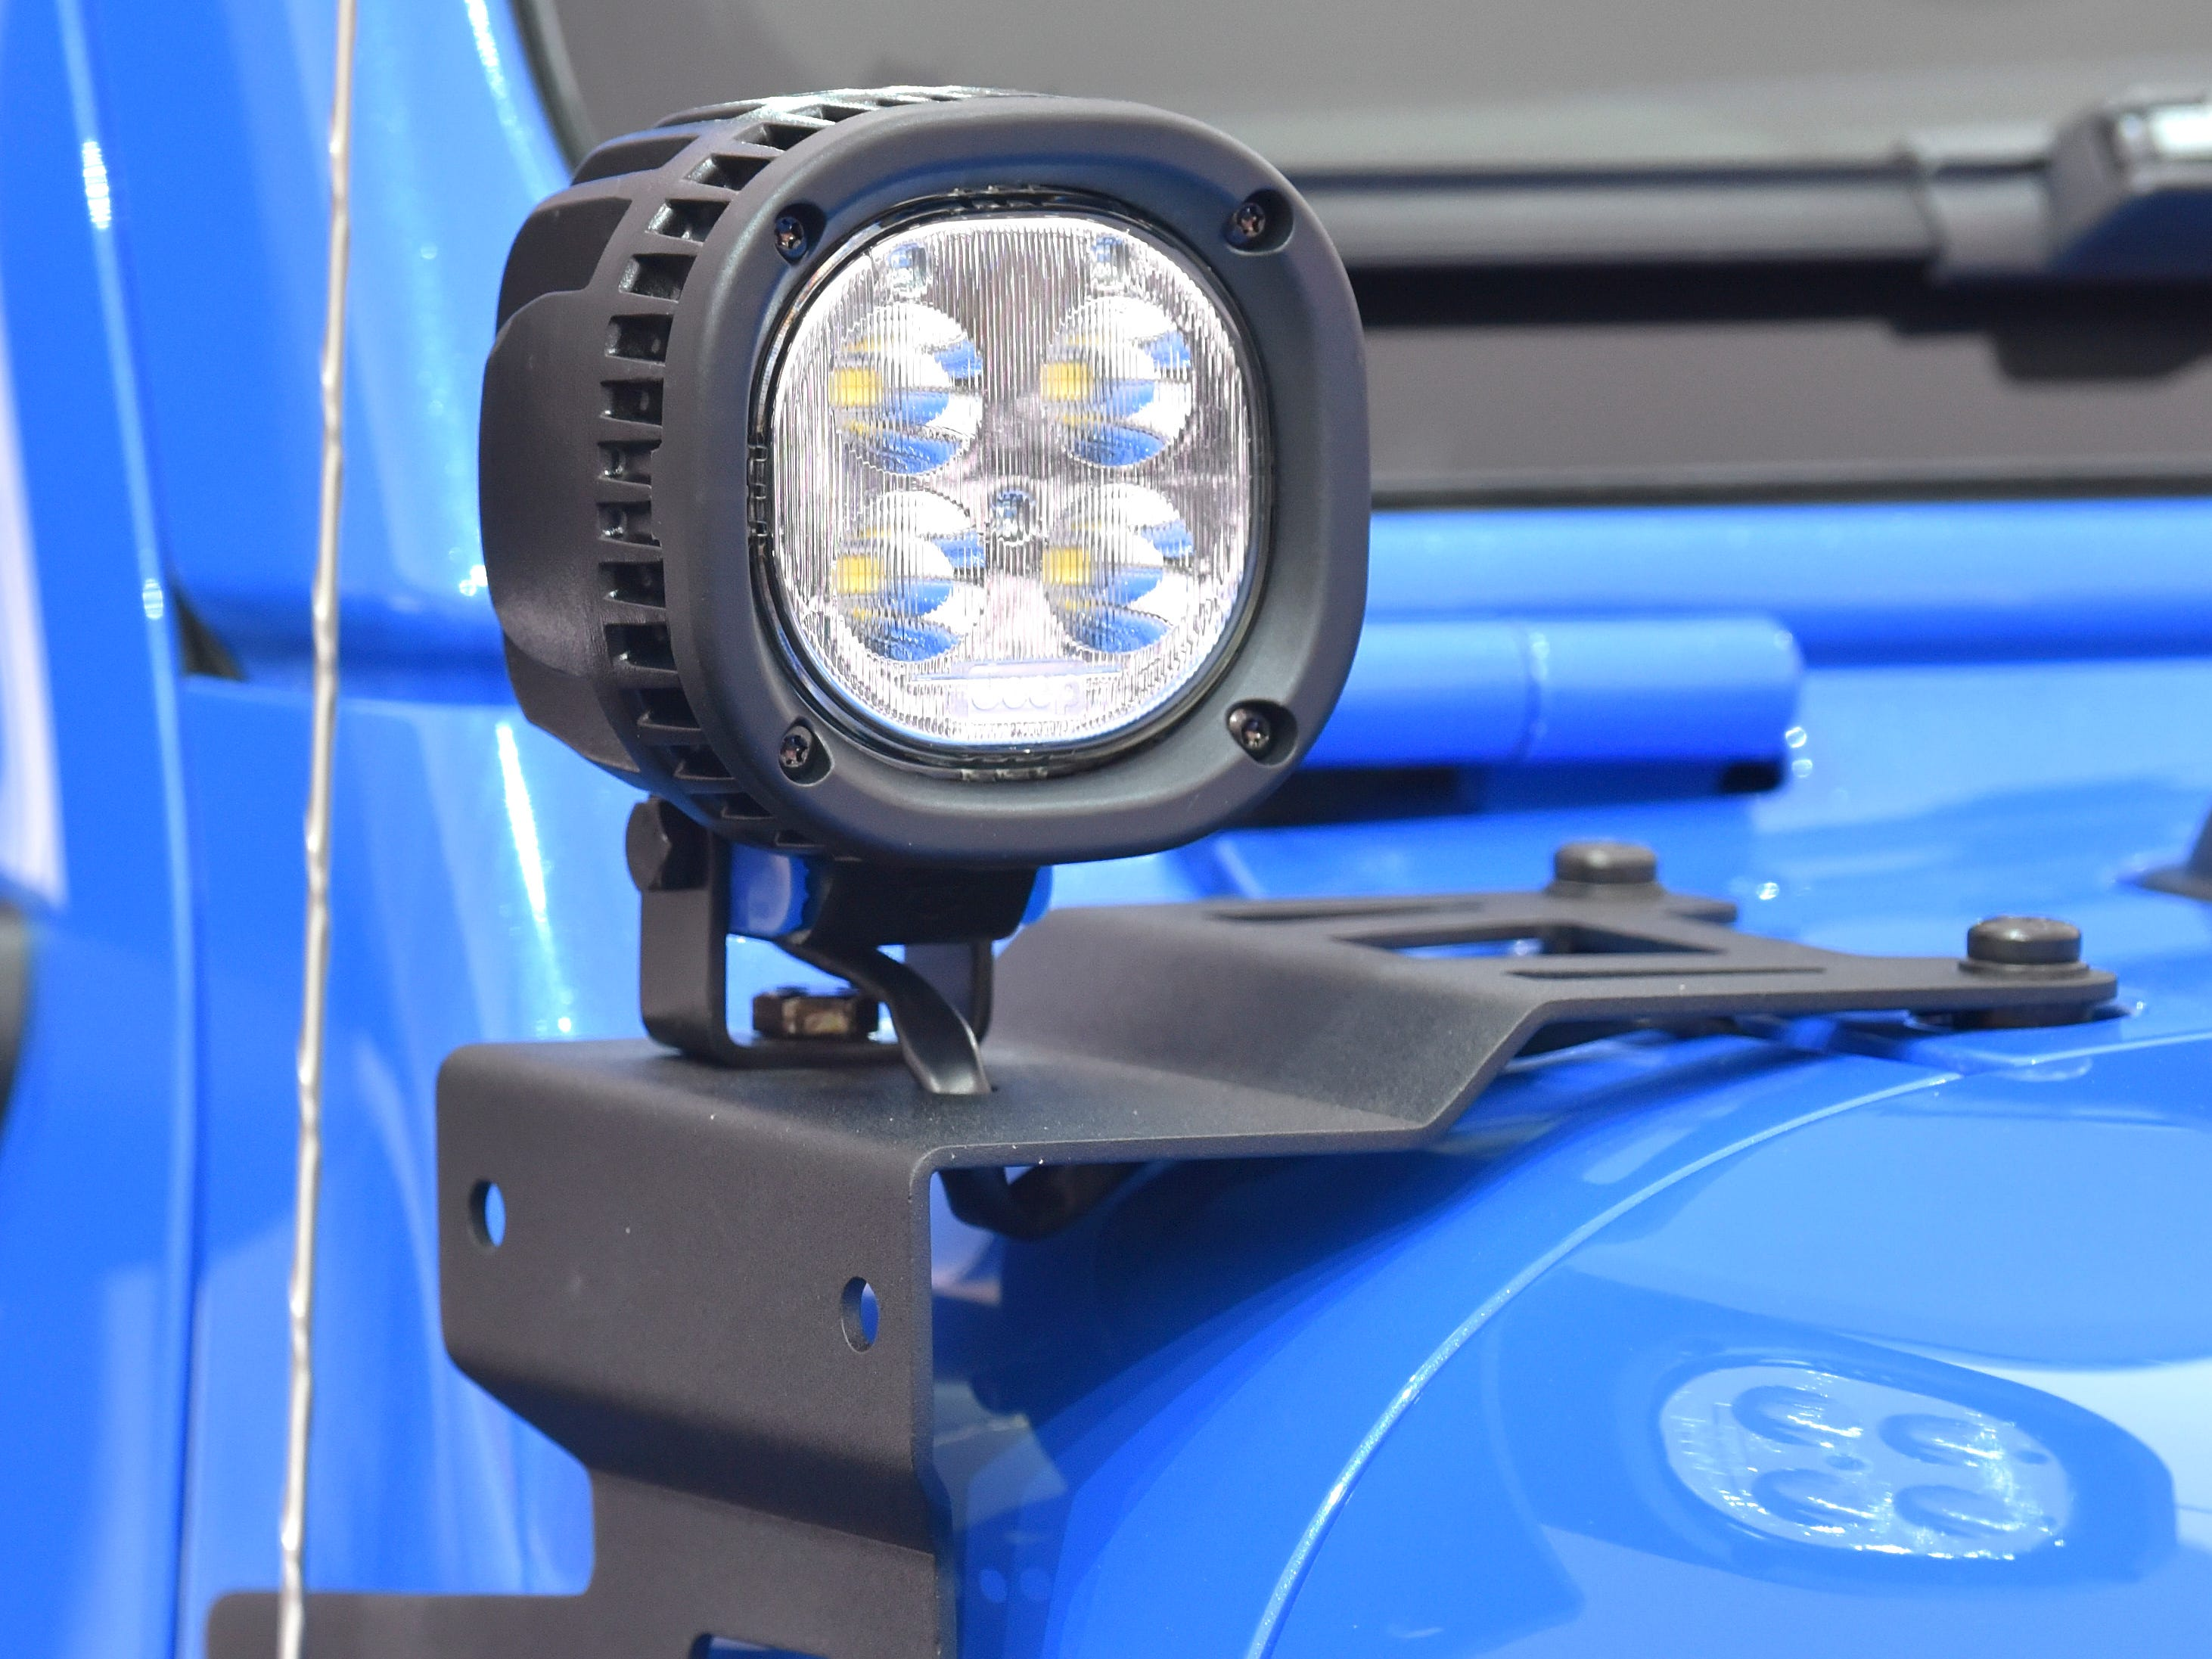 This is an LED off-road light on the passenger's side of the Jeep J6 concept in Metallic Brilliant Blue.